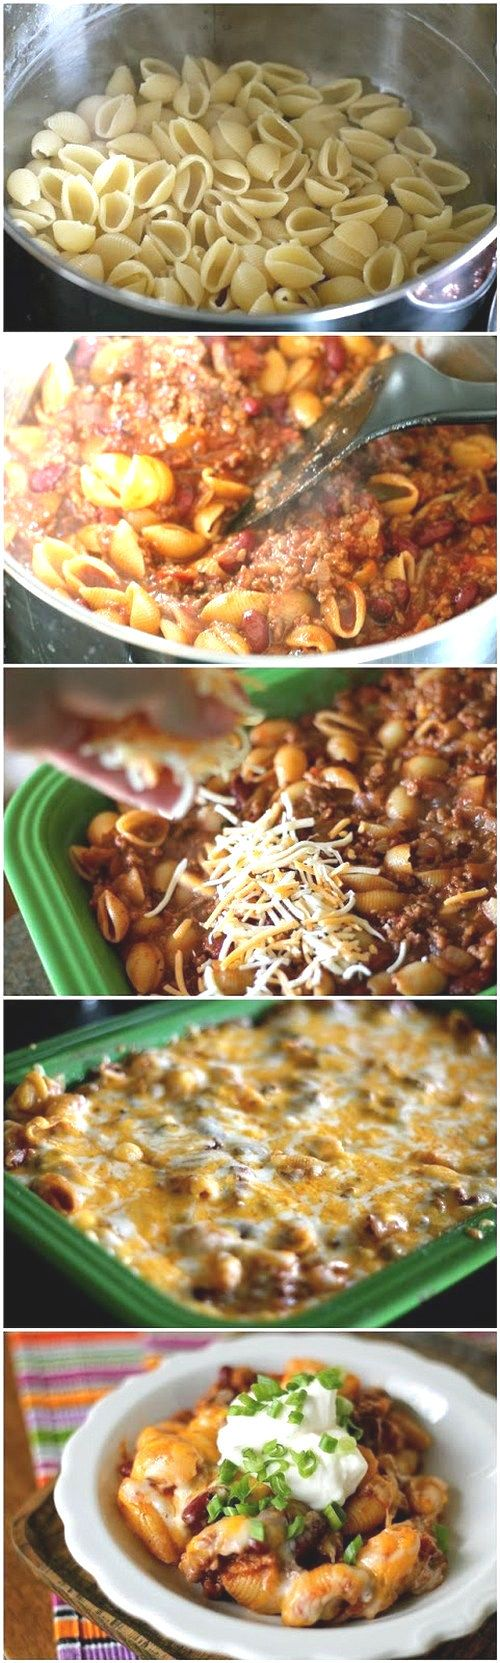 Chili Pasta Bake // Need some great recipes for your new home? Check some out here! We also have a few recipe ideas on our website www.soldsignsanddreams.com